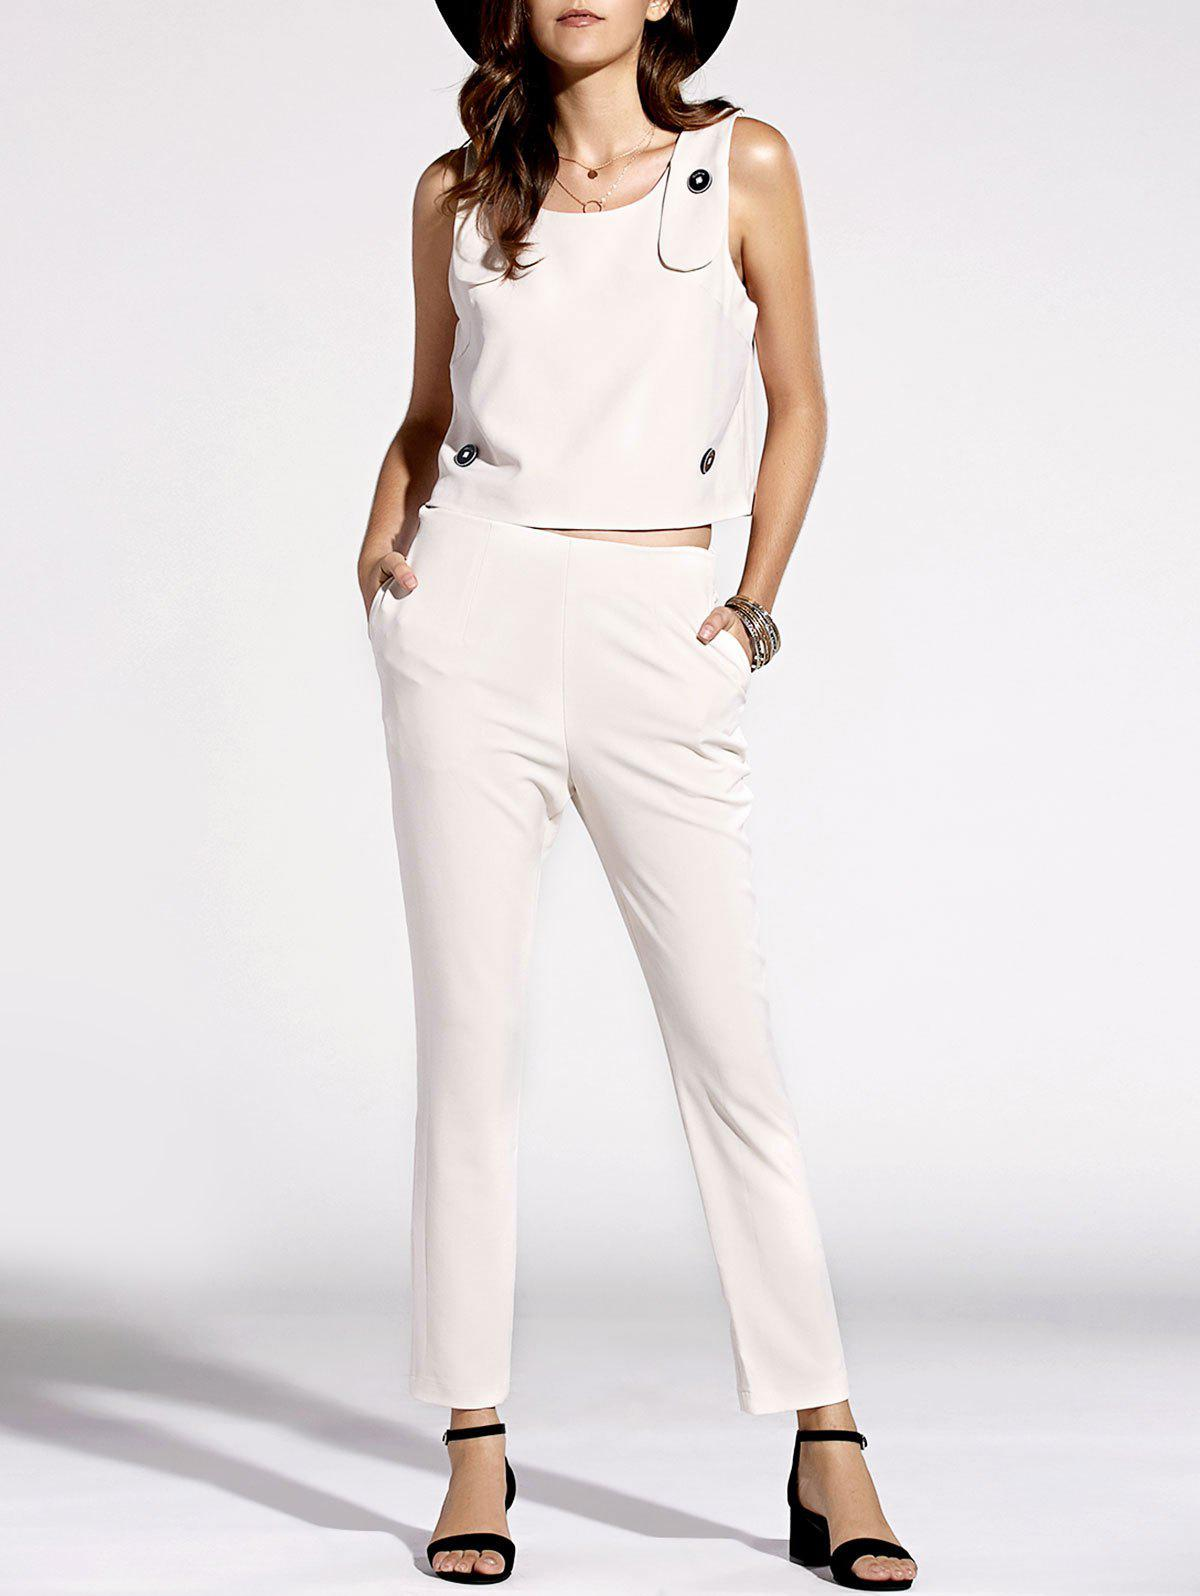 Stylish Scoop Neck Top and Solid Color Pants Set For Women - OFF WHITE XL